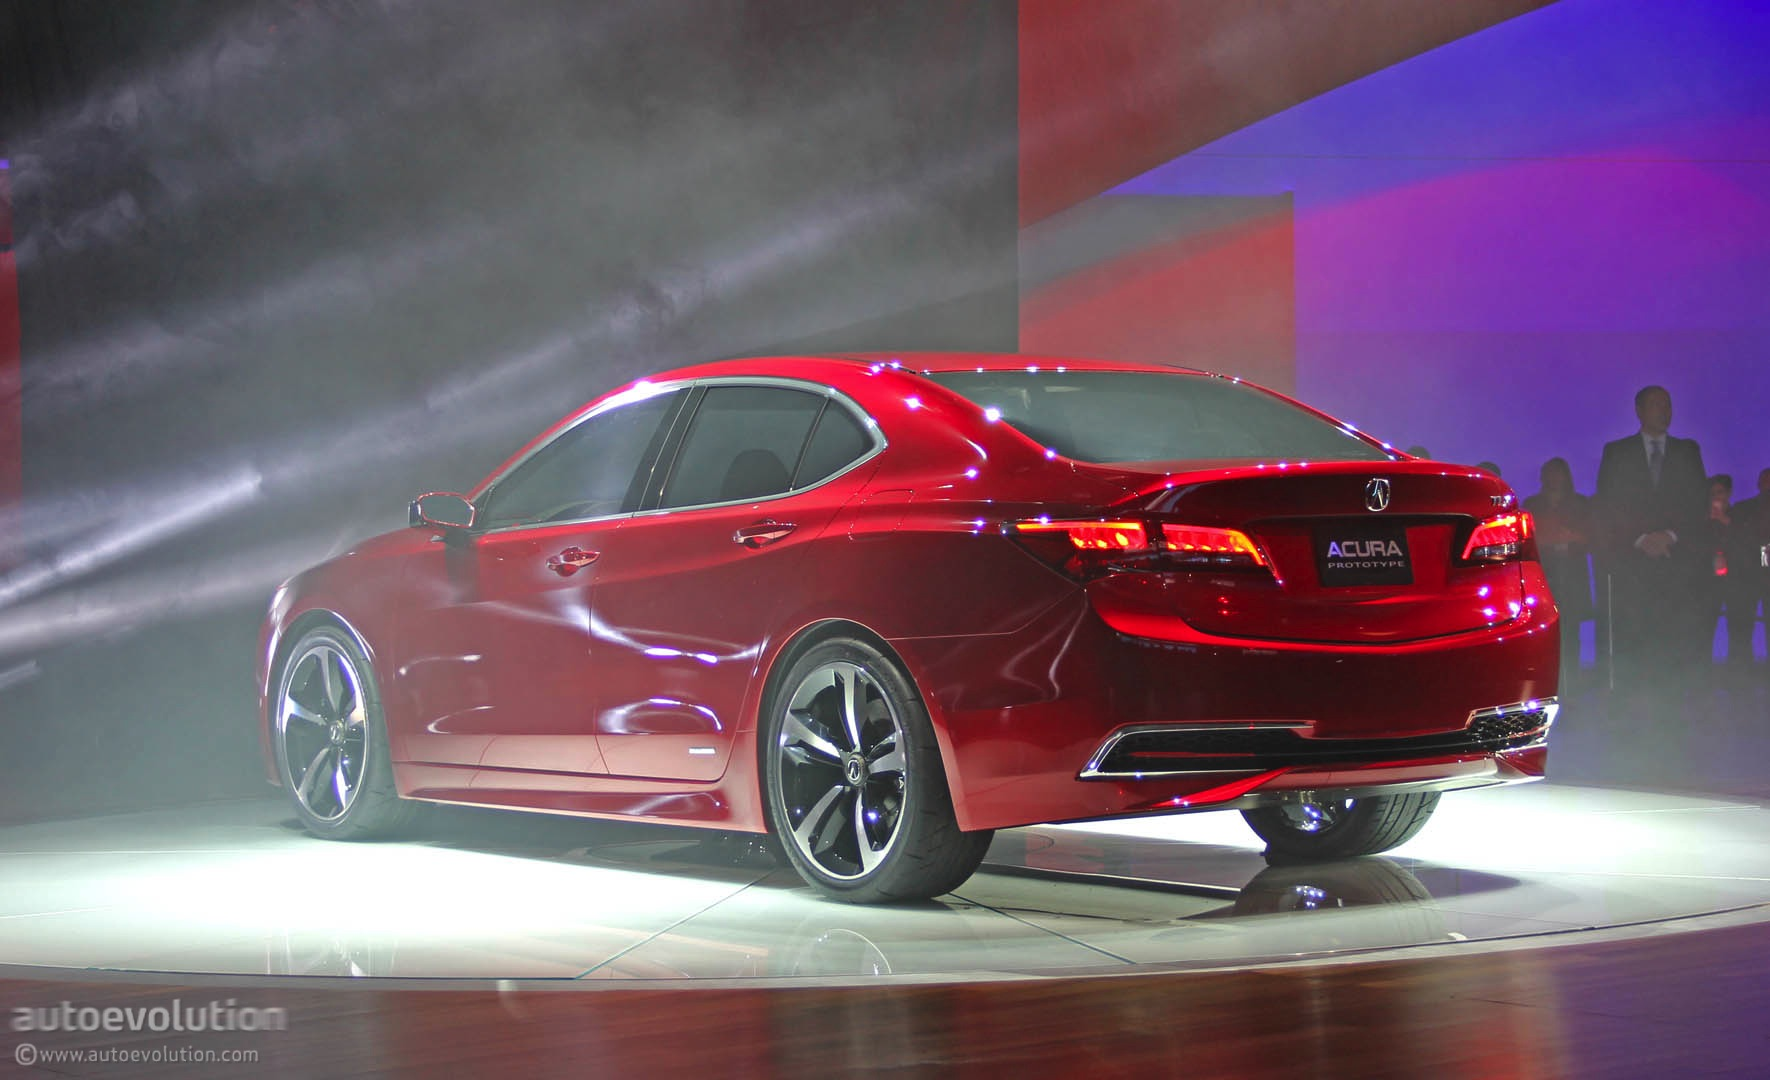 2015 Acura TLX Prototype Unveiled at 2014 Detroit Show [Live Photos]